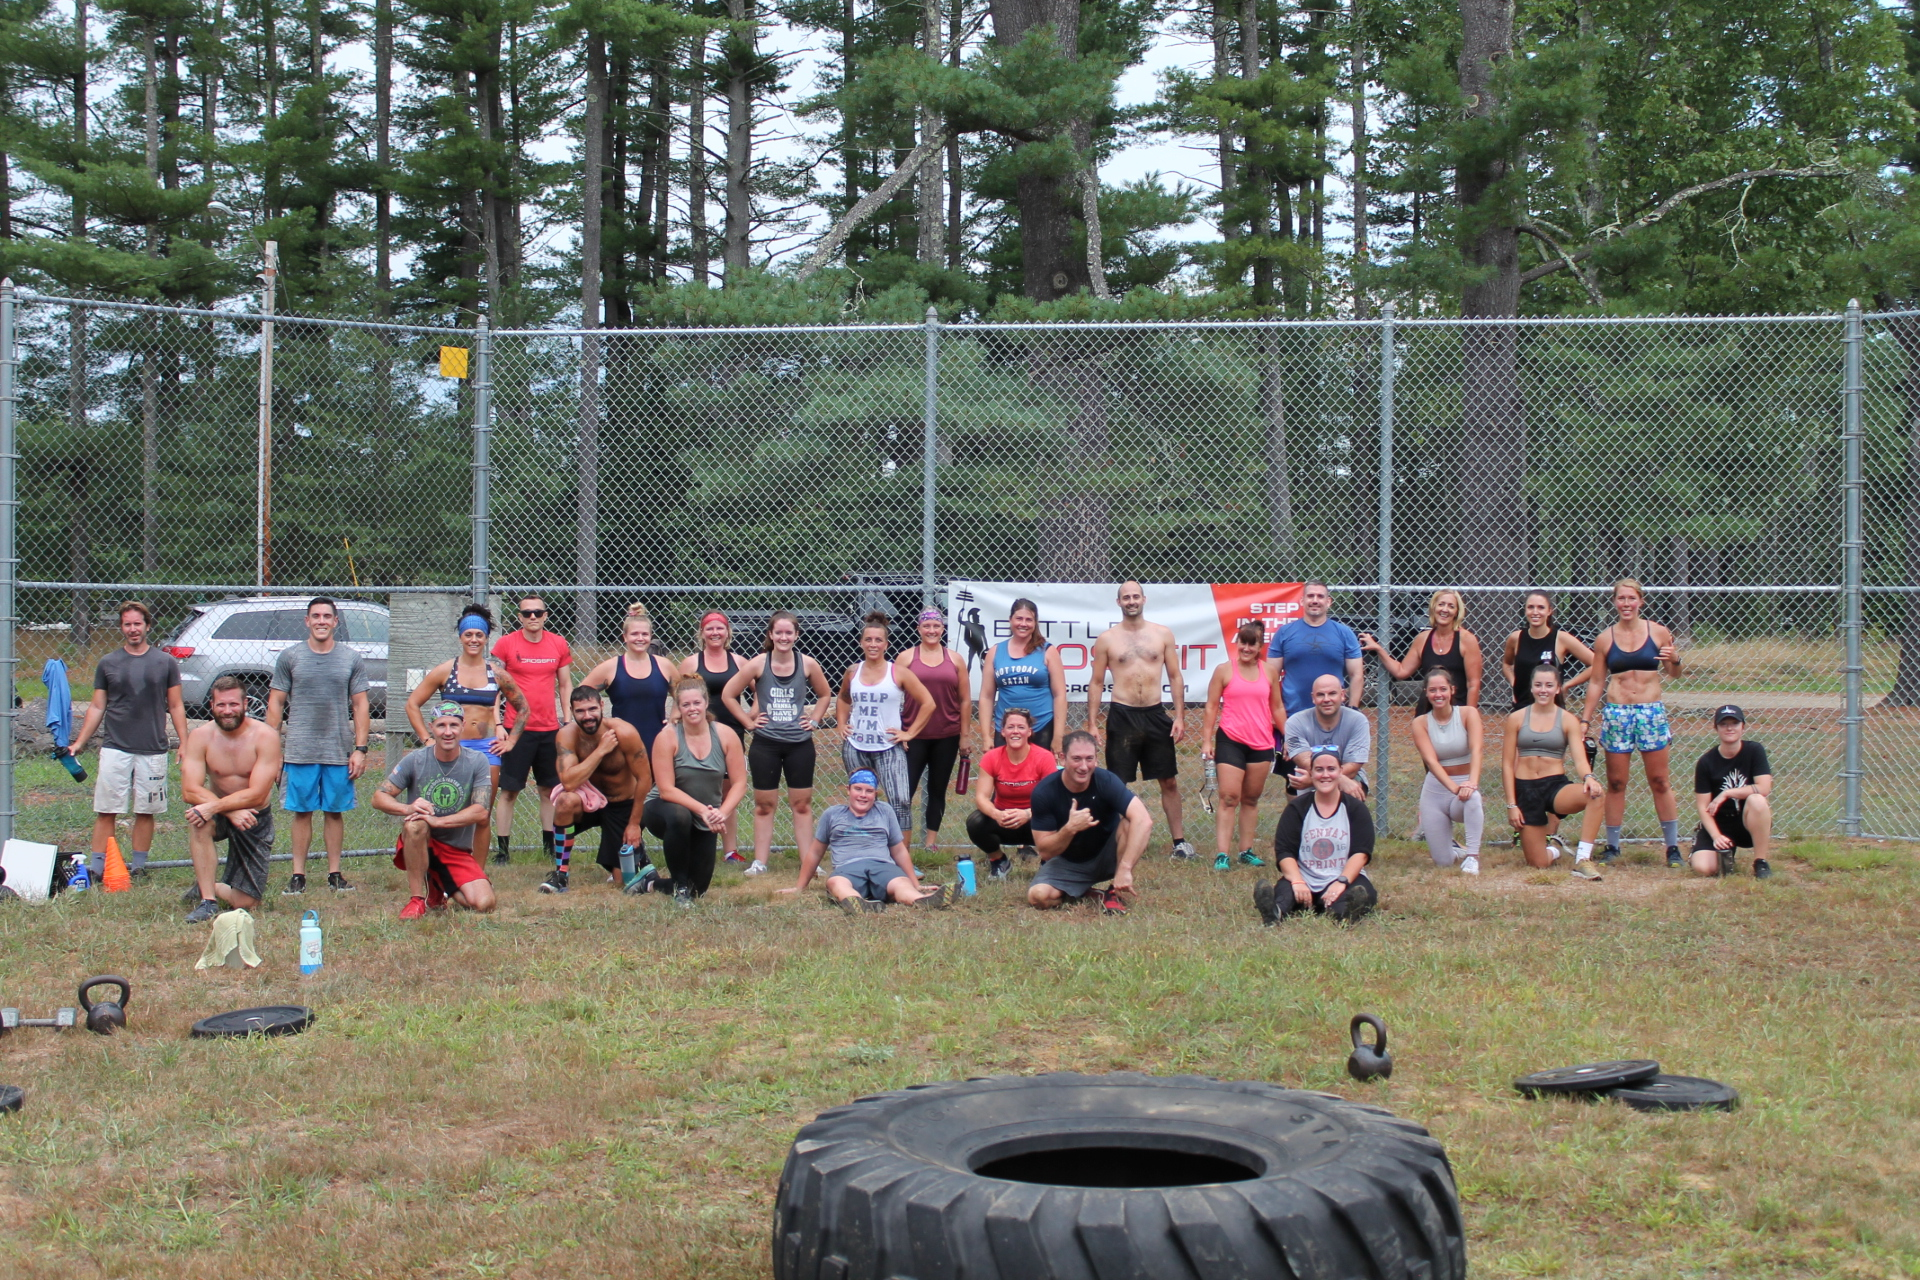 August 22, 2020 – 2nd Annual WOD in the park